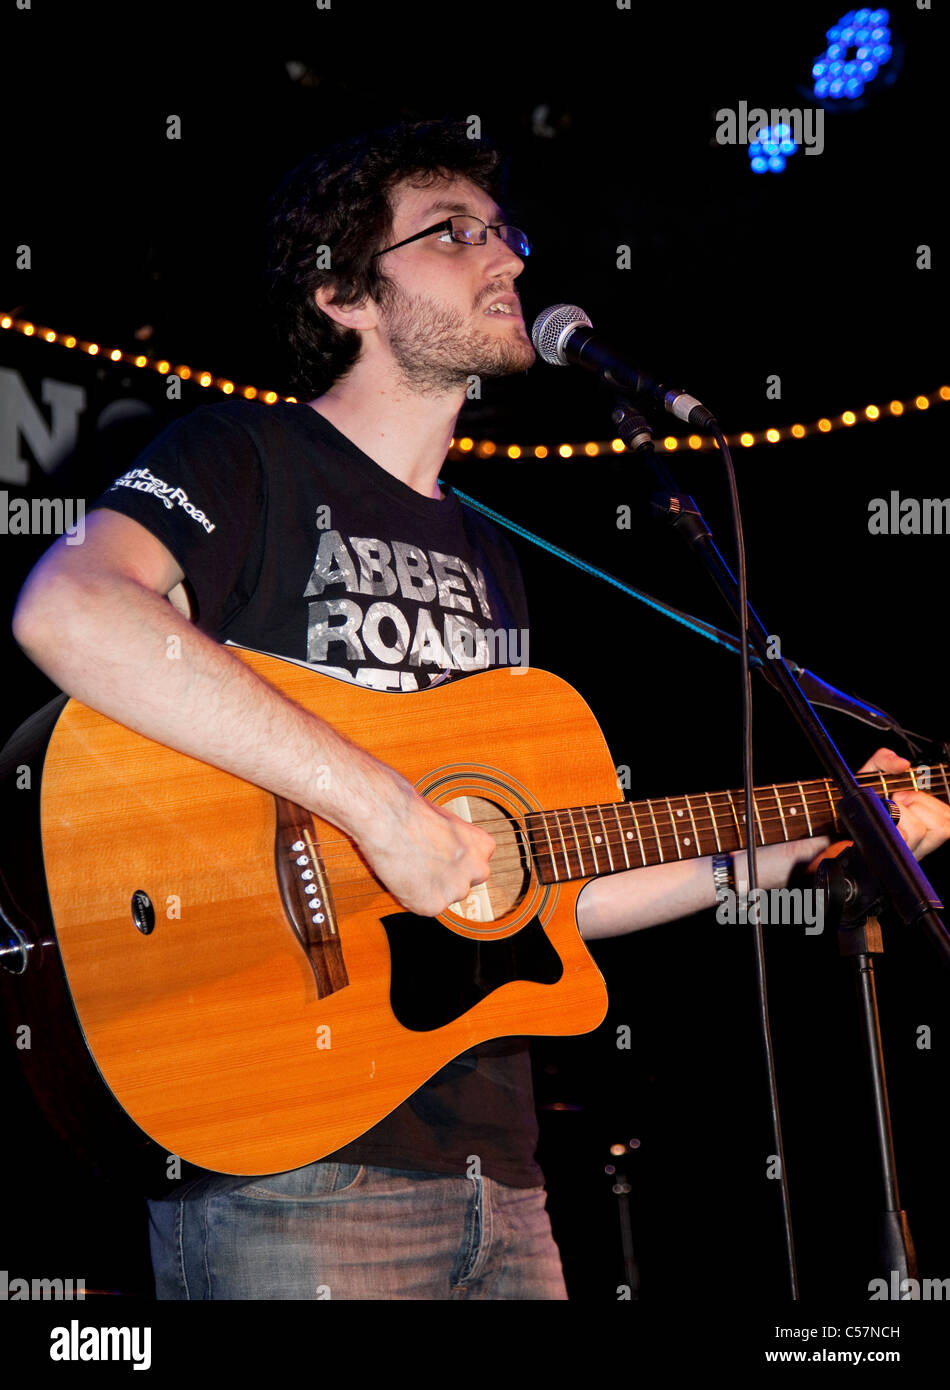 Comedian and musician Jay Foreman performing in London - Stock Image